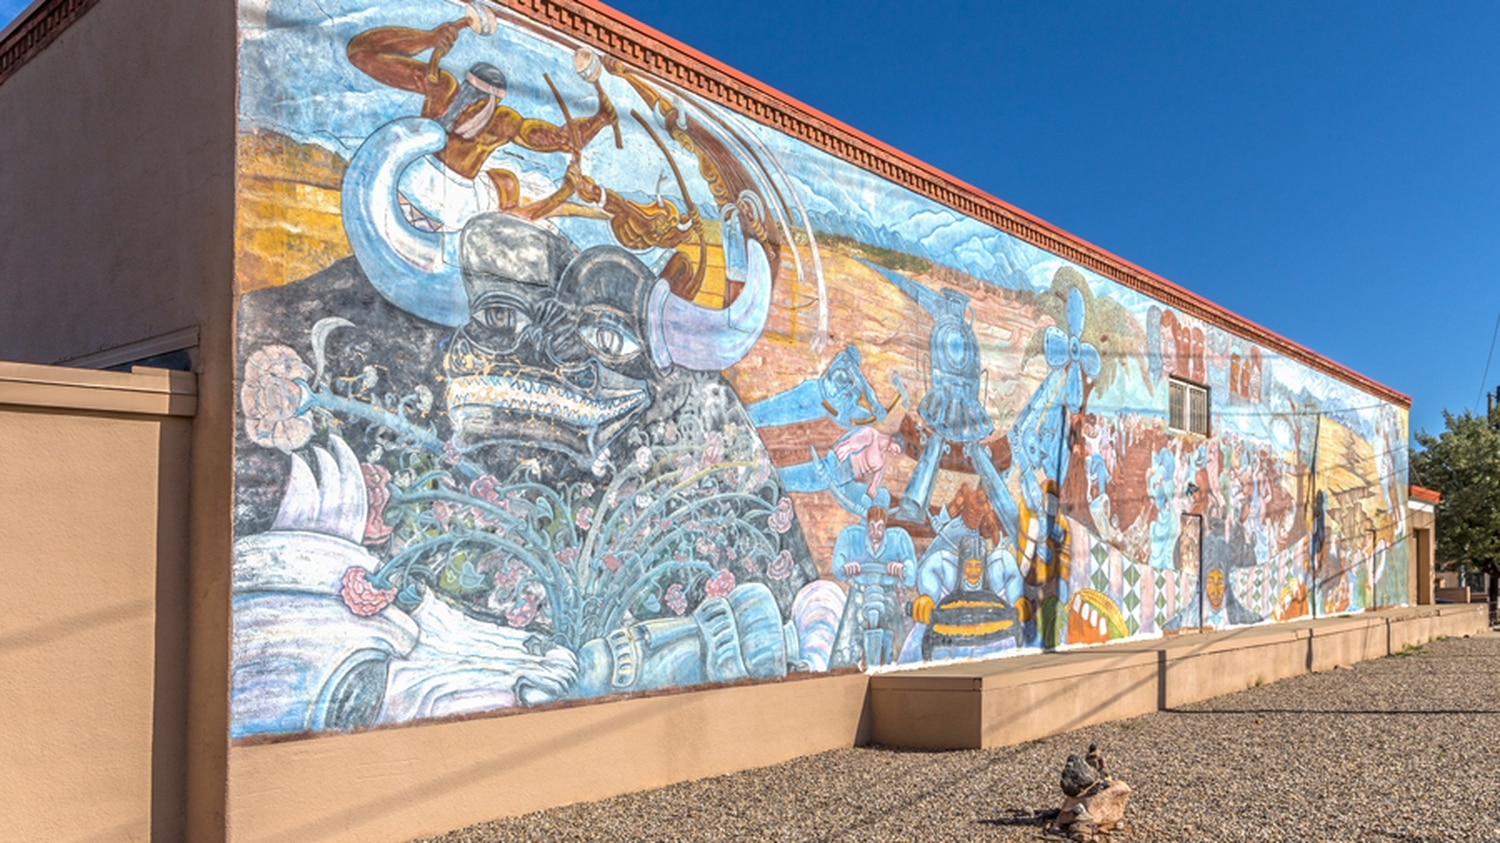 The 1930s Halpin Building and its 1980s mural today from Guadalupe Street.